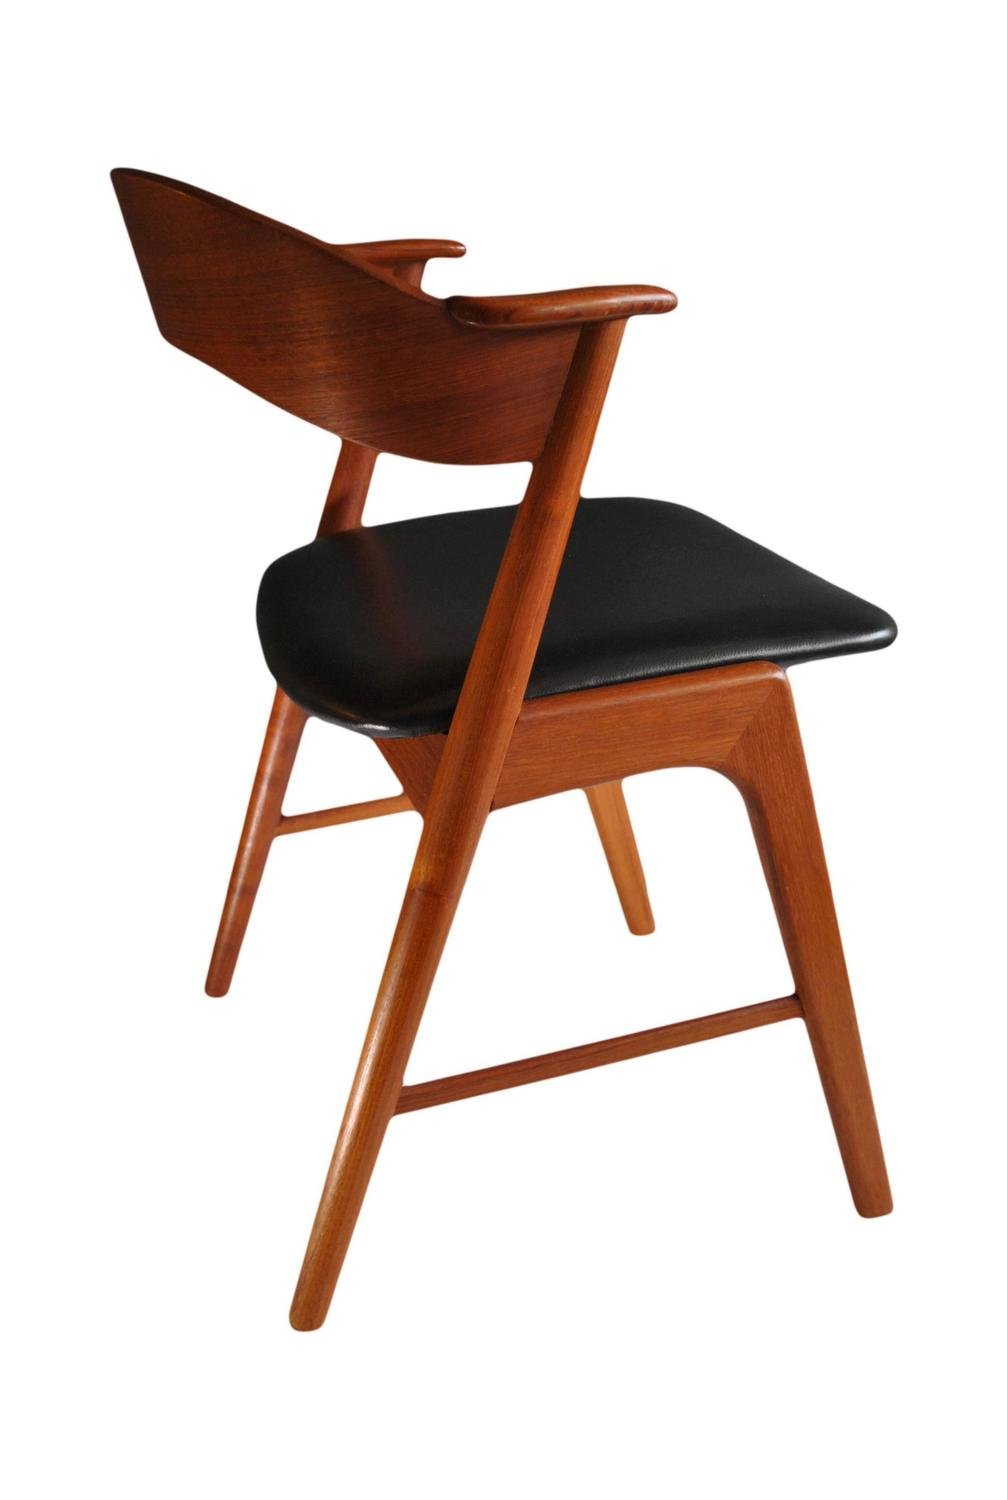 Kai Kristiansen Teak And Leather Dining Chairs Set Of 10 At 1stdibs